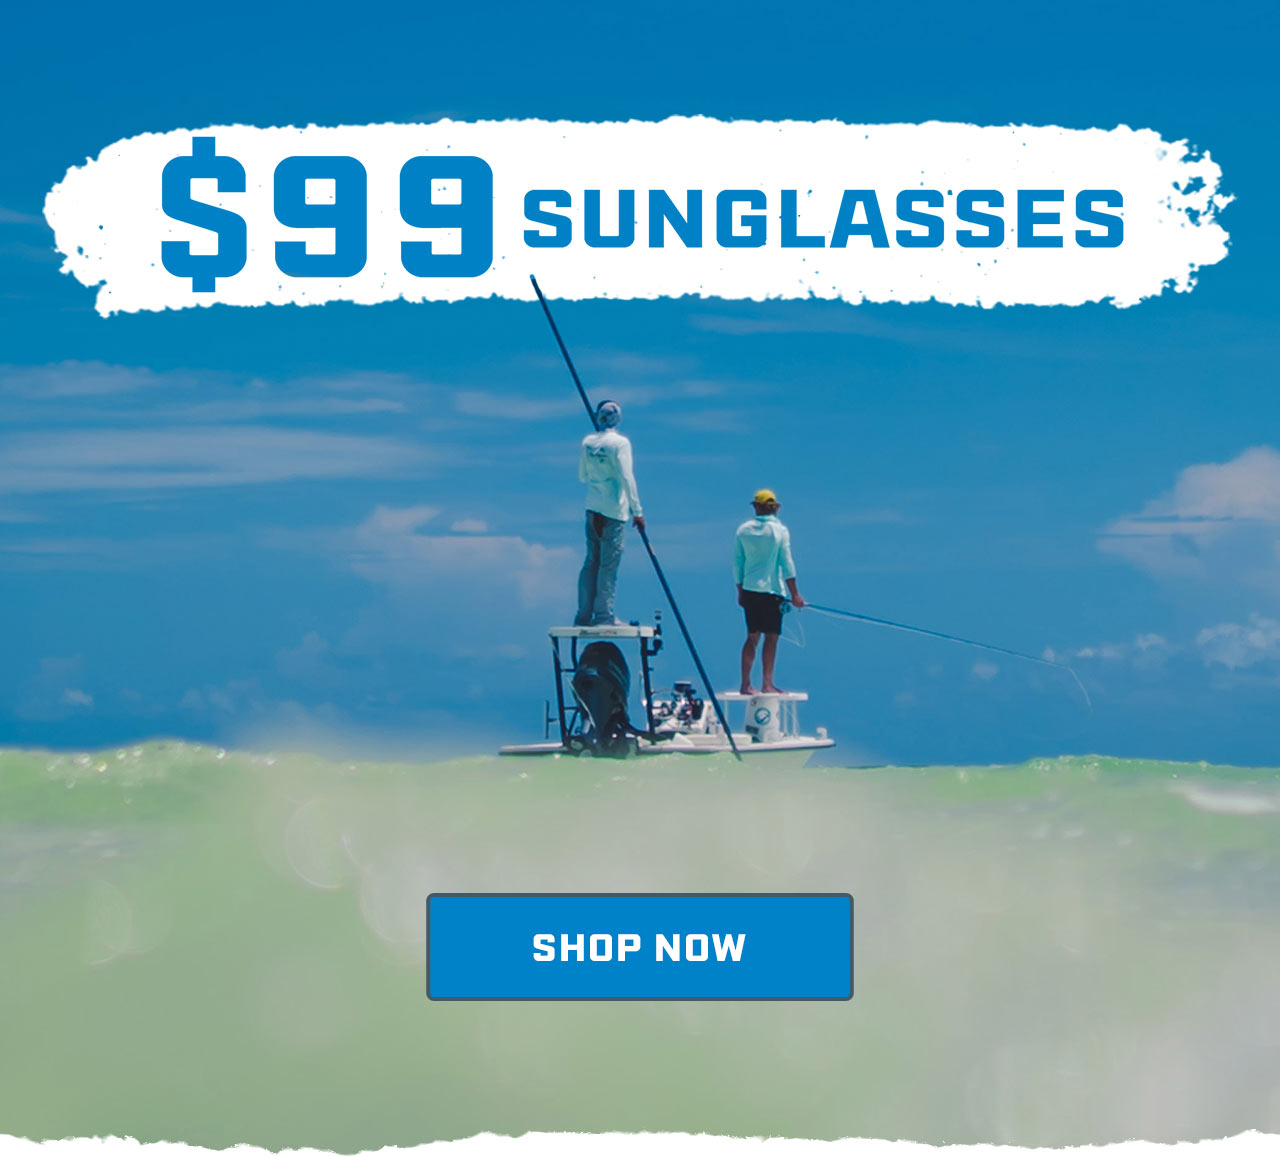 $99 Sunglasses. All Day while they last.